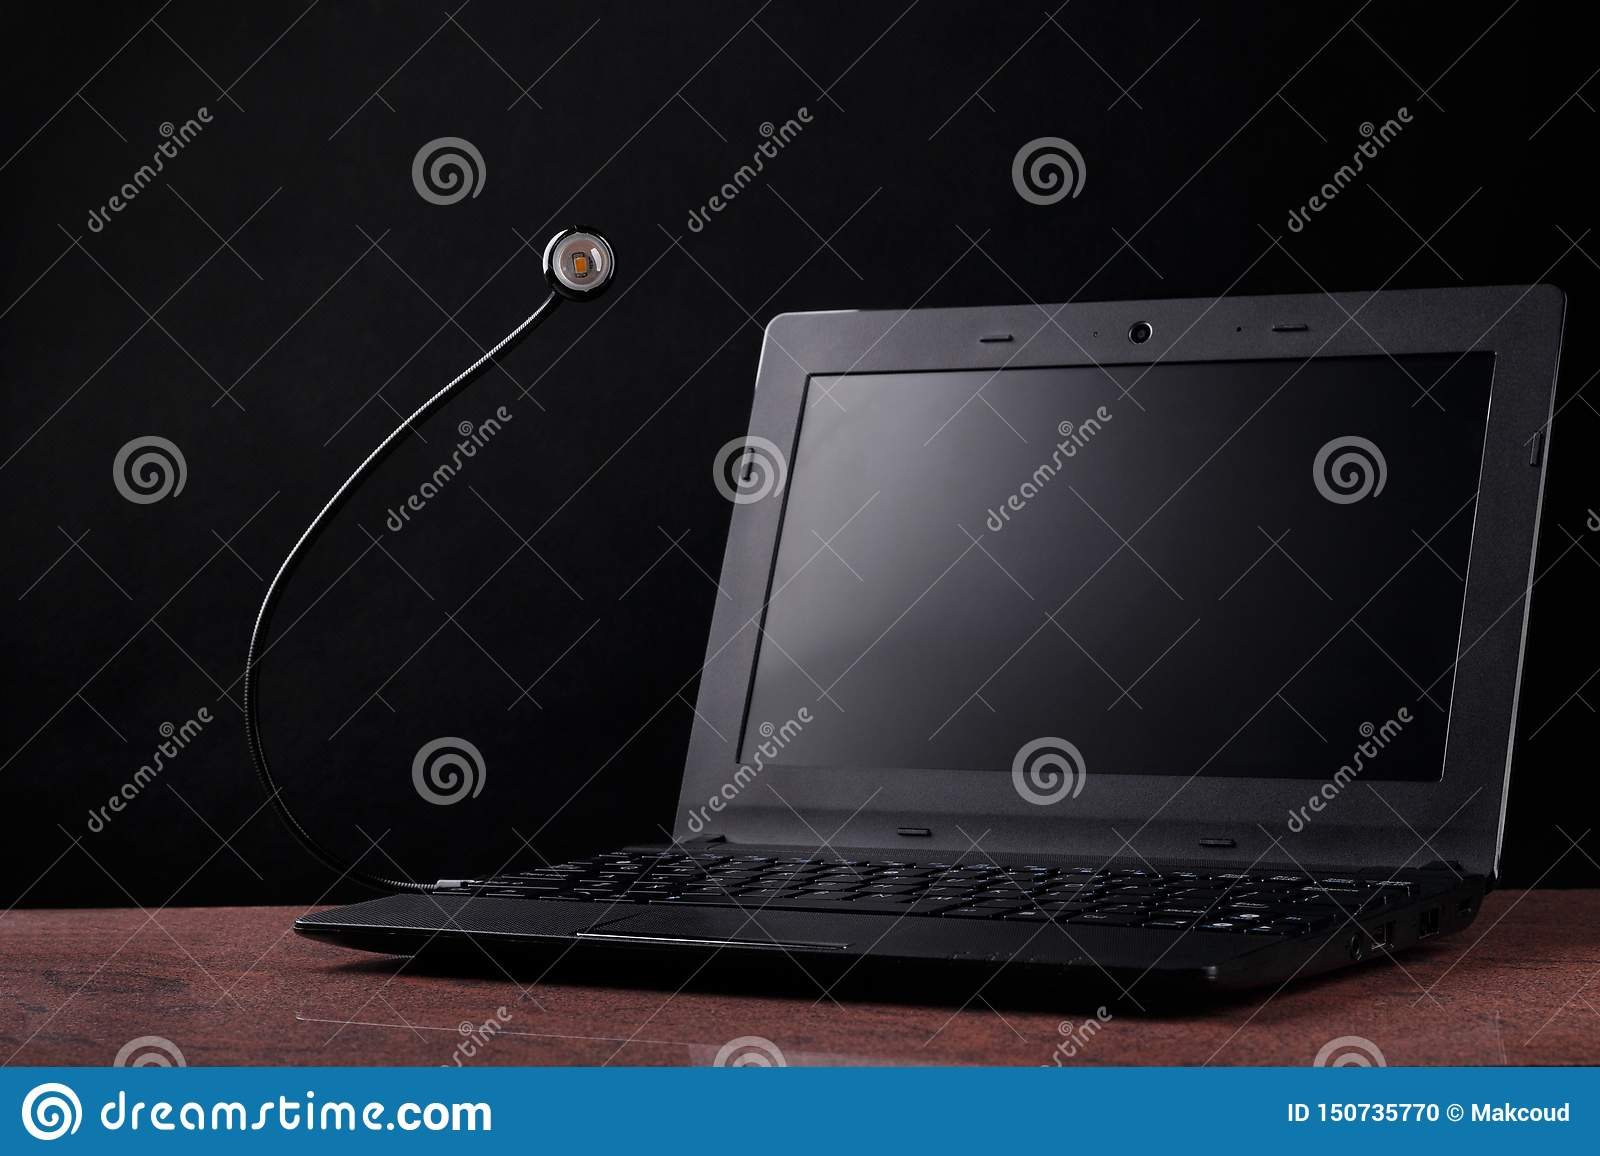 LED USB lamp connected to laptop on black background. Concept of alive usb-lamp.